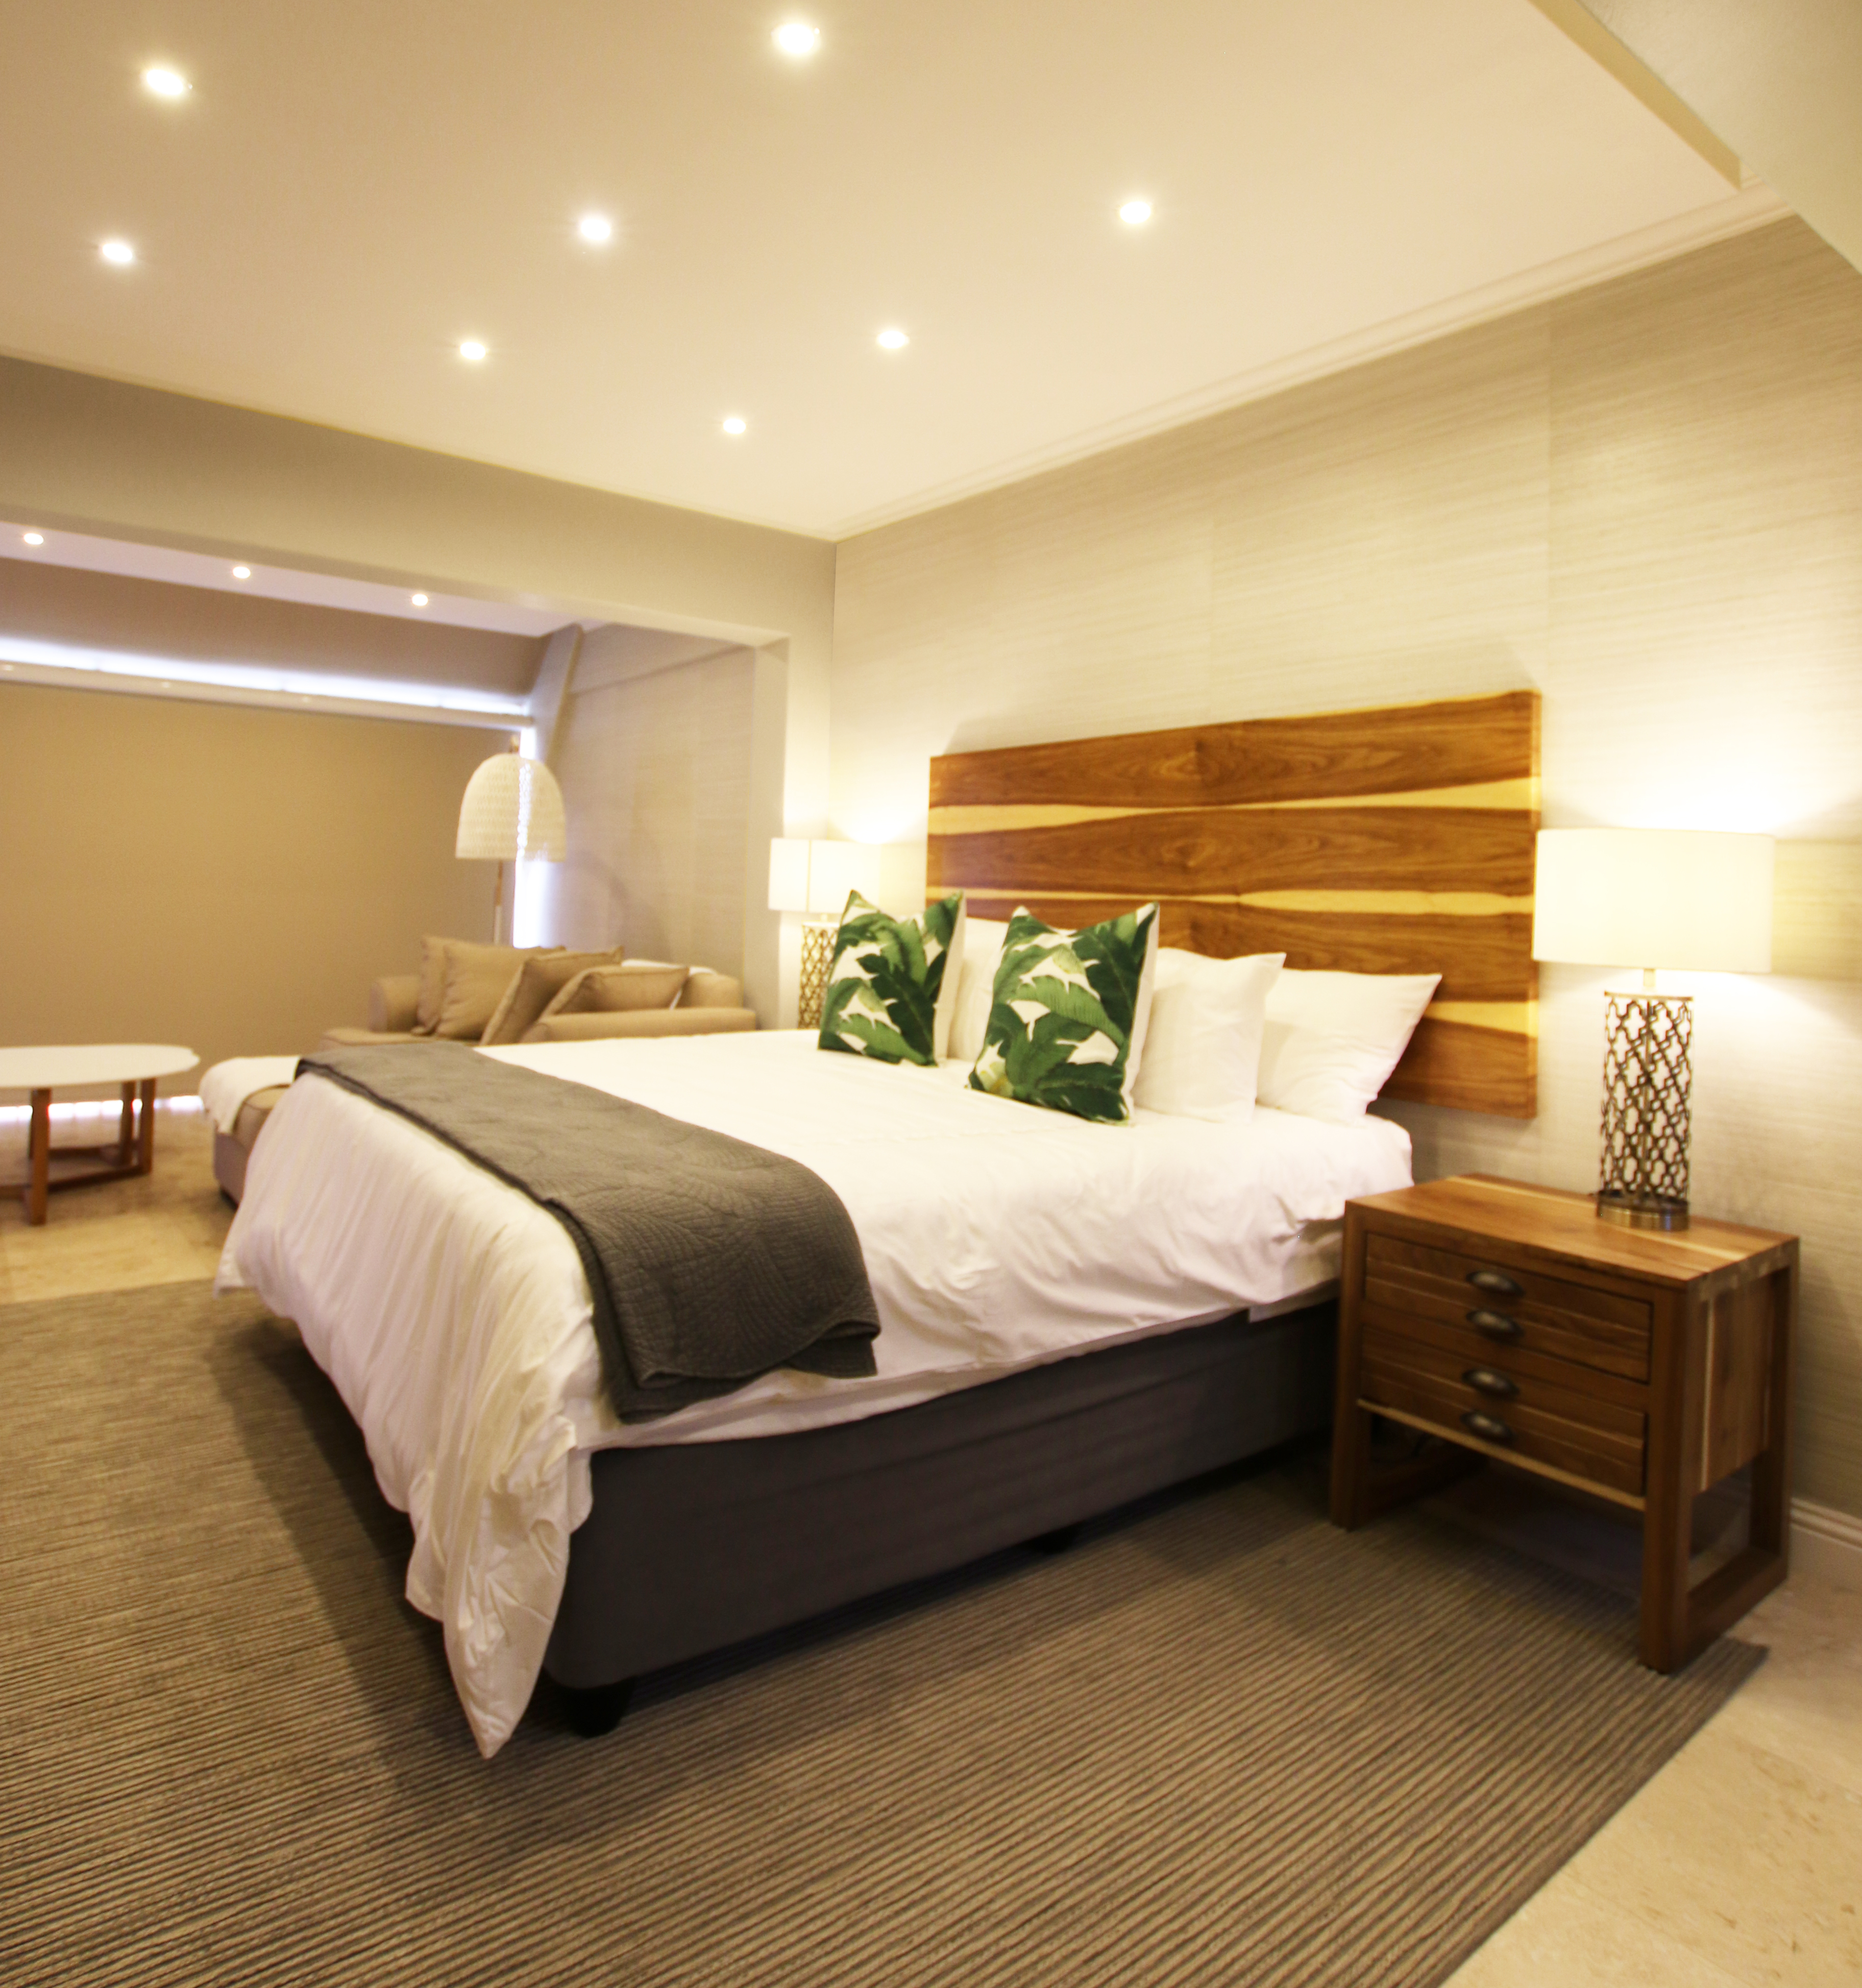 JSD INterior- Interior Design, beach house design, main bedroom design residential design